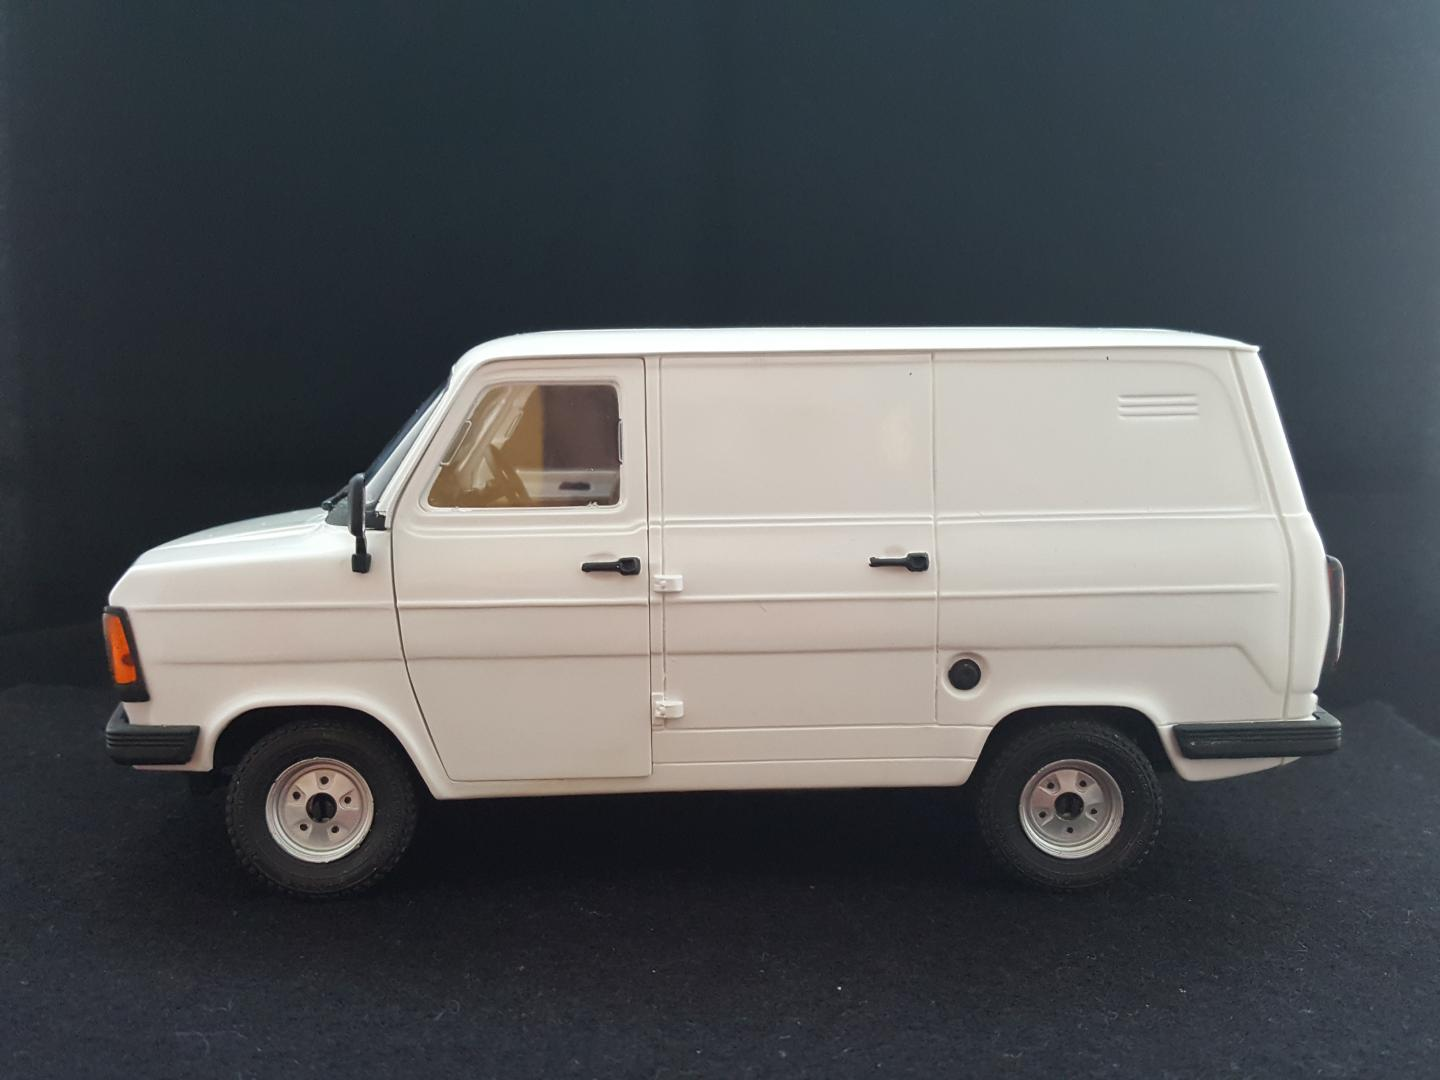 Ford Transit Van >> Italeri (Esci) Ford Transit mk2 van - Under Glass: Pickups, Vans, SUVs, Light Commercial - Model ...